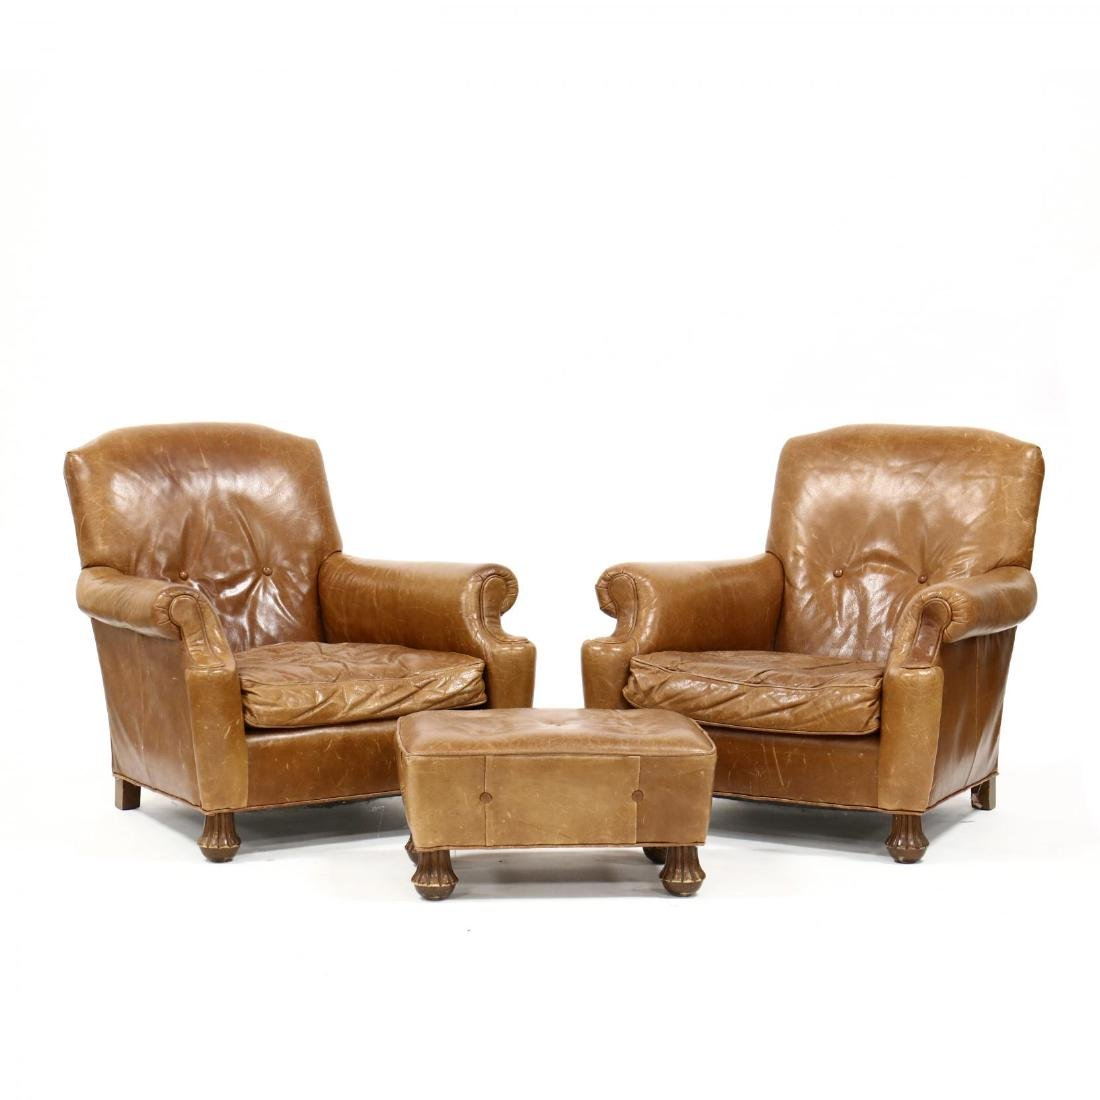 ABC Carpet & Home, Pair of Leather Club Chairs and